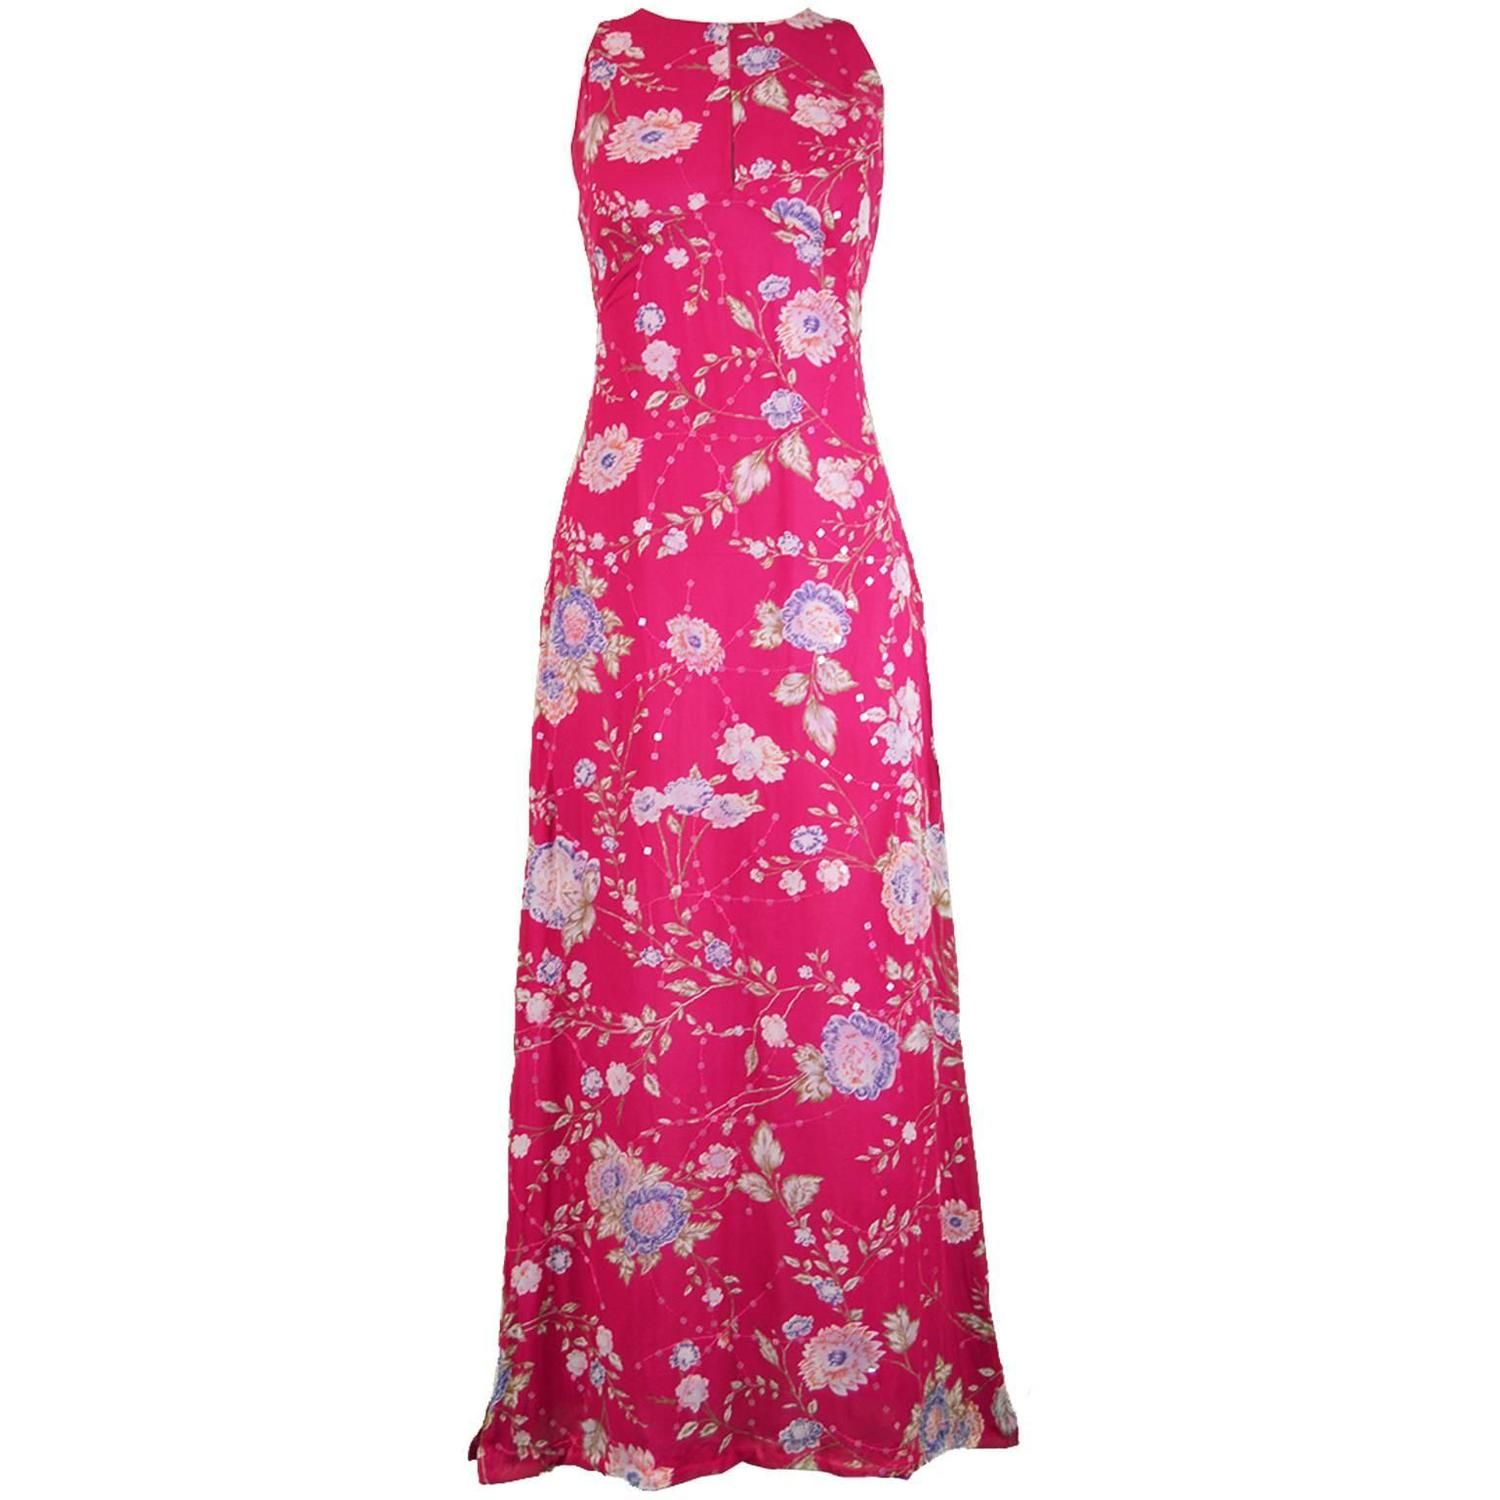 434c75dd Emanuel Ungaro Vintage Fuschia Silk Floral Asian Maxi Dress, 1990s | See  more vintage Chinese